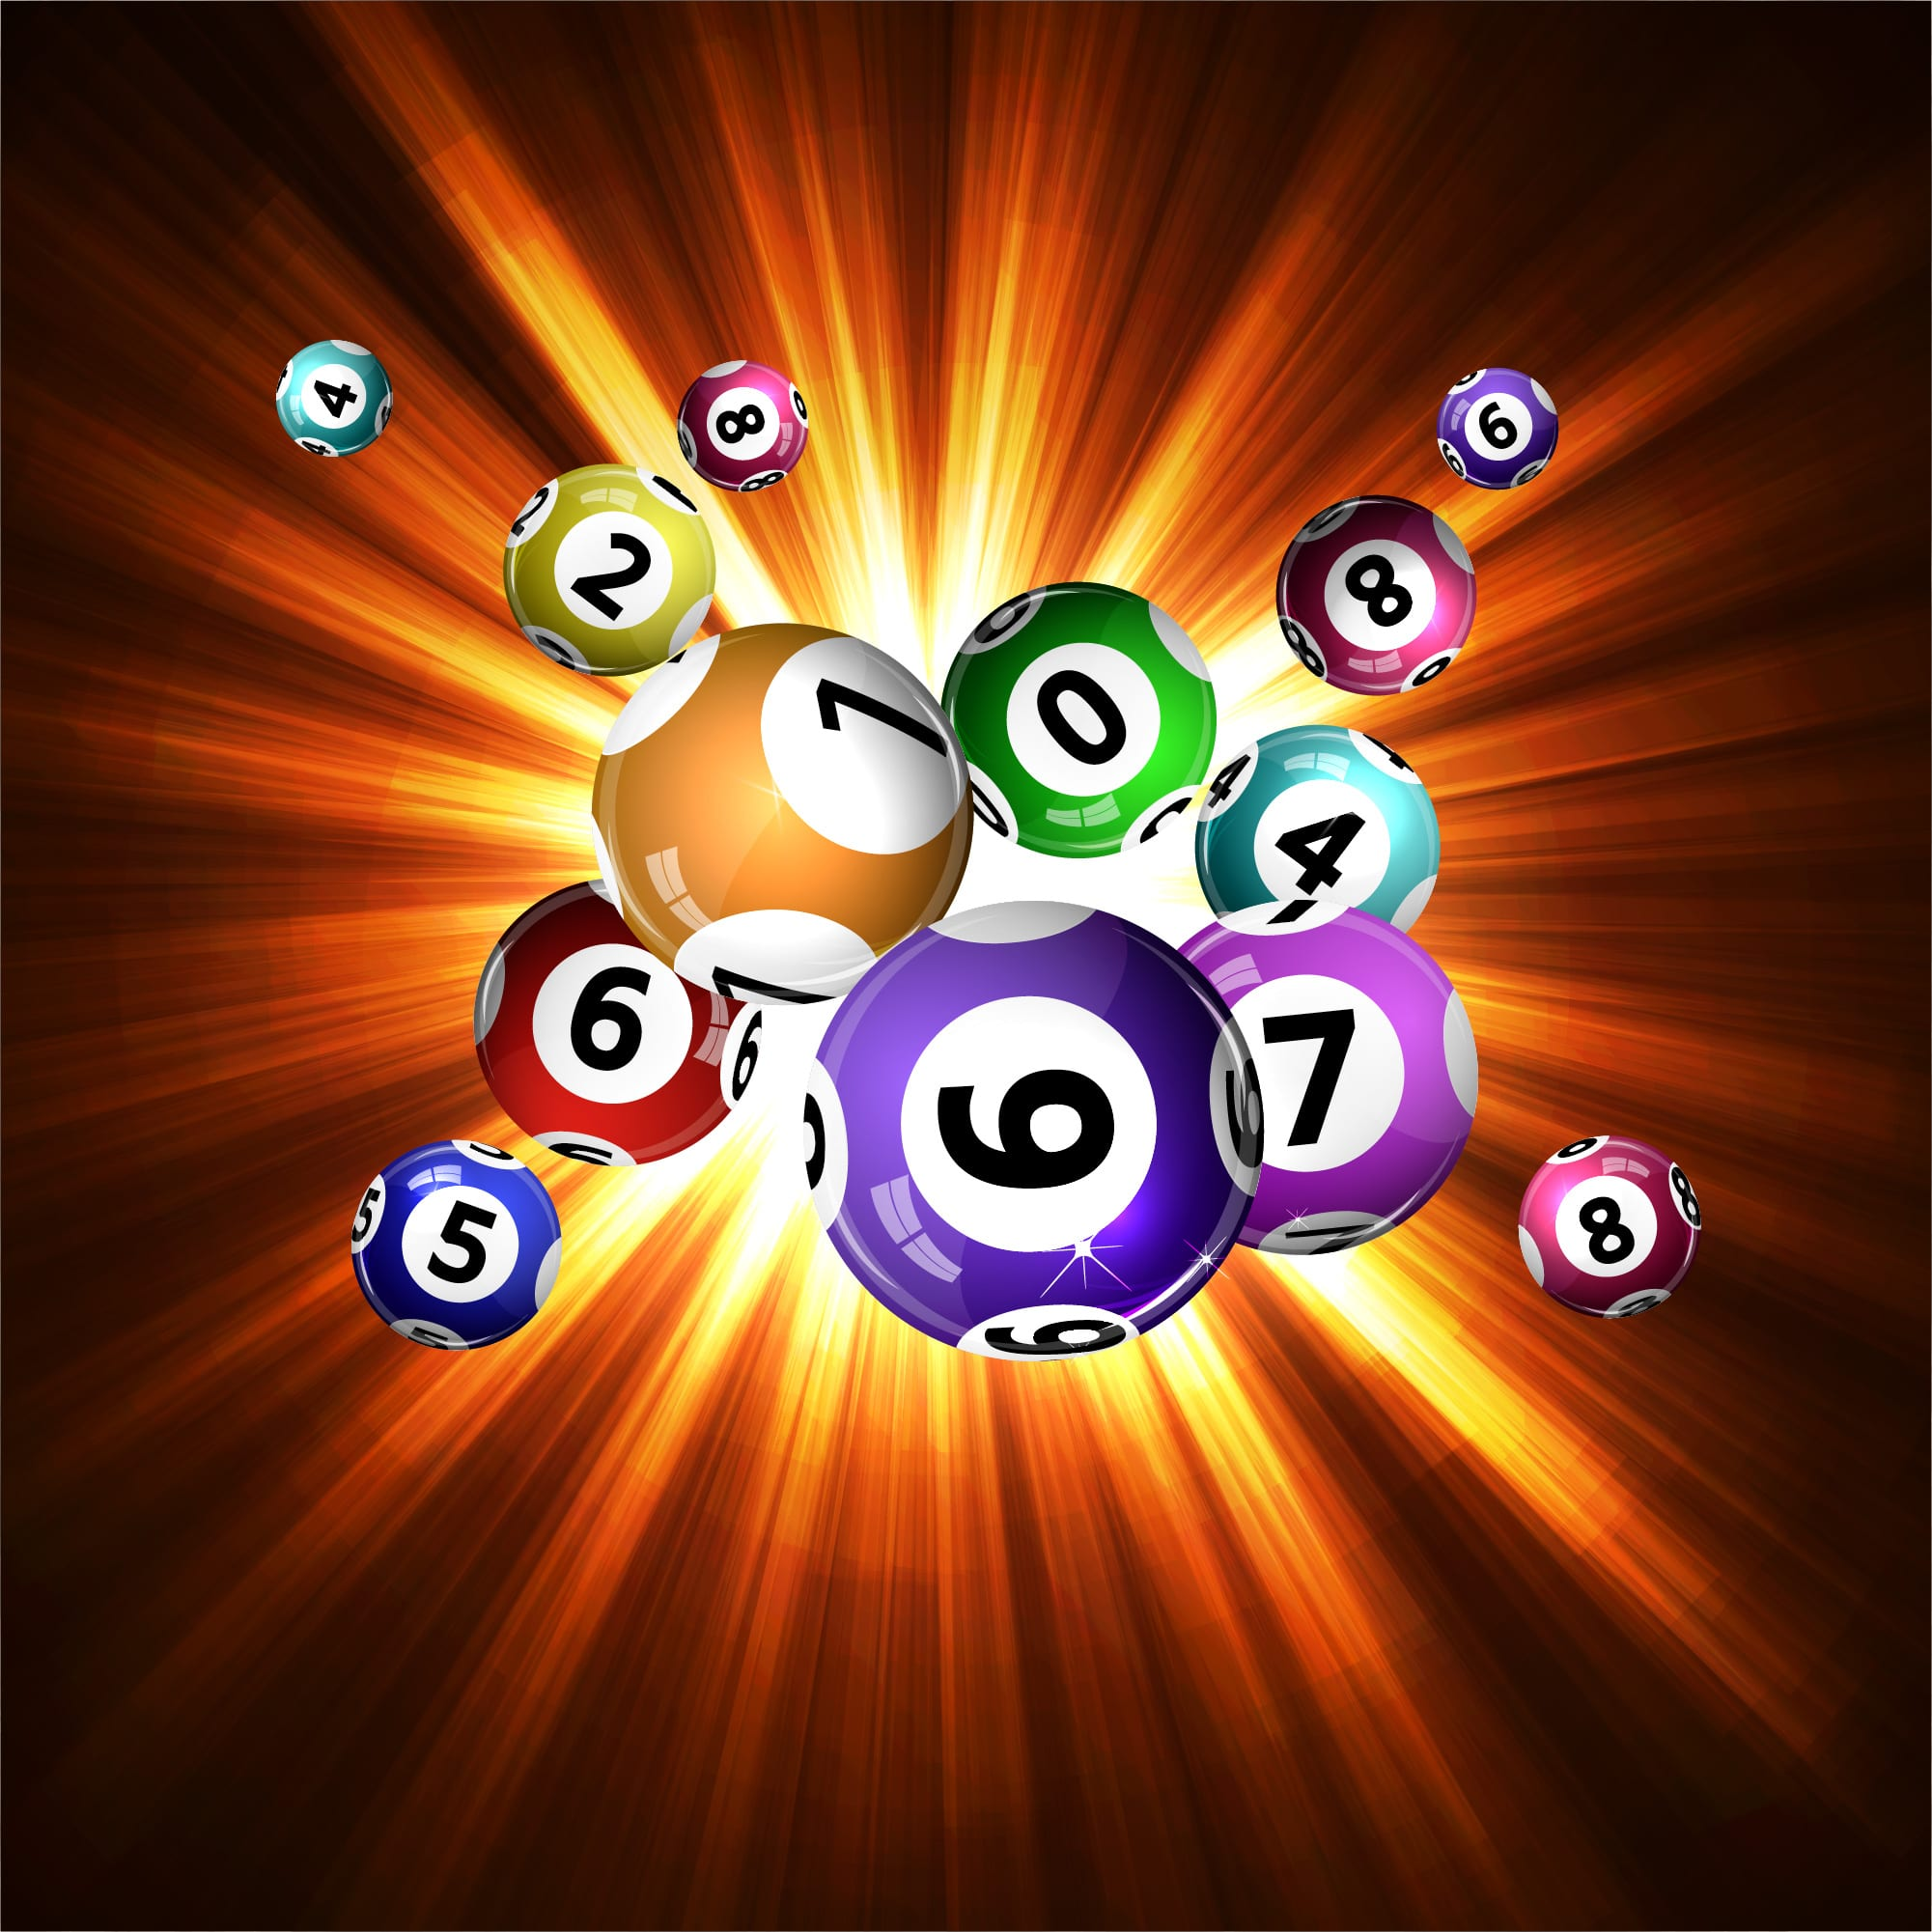 2 12 20 Mass Lottery Results Itemlive Itemlive